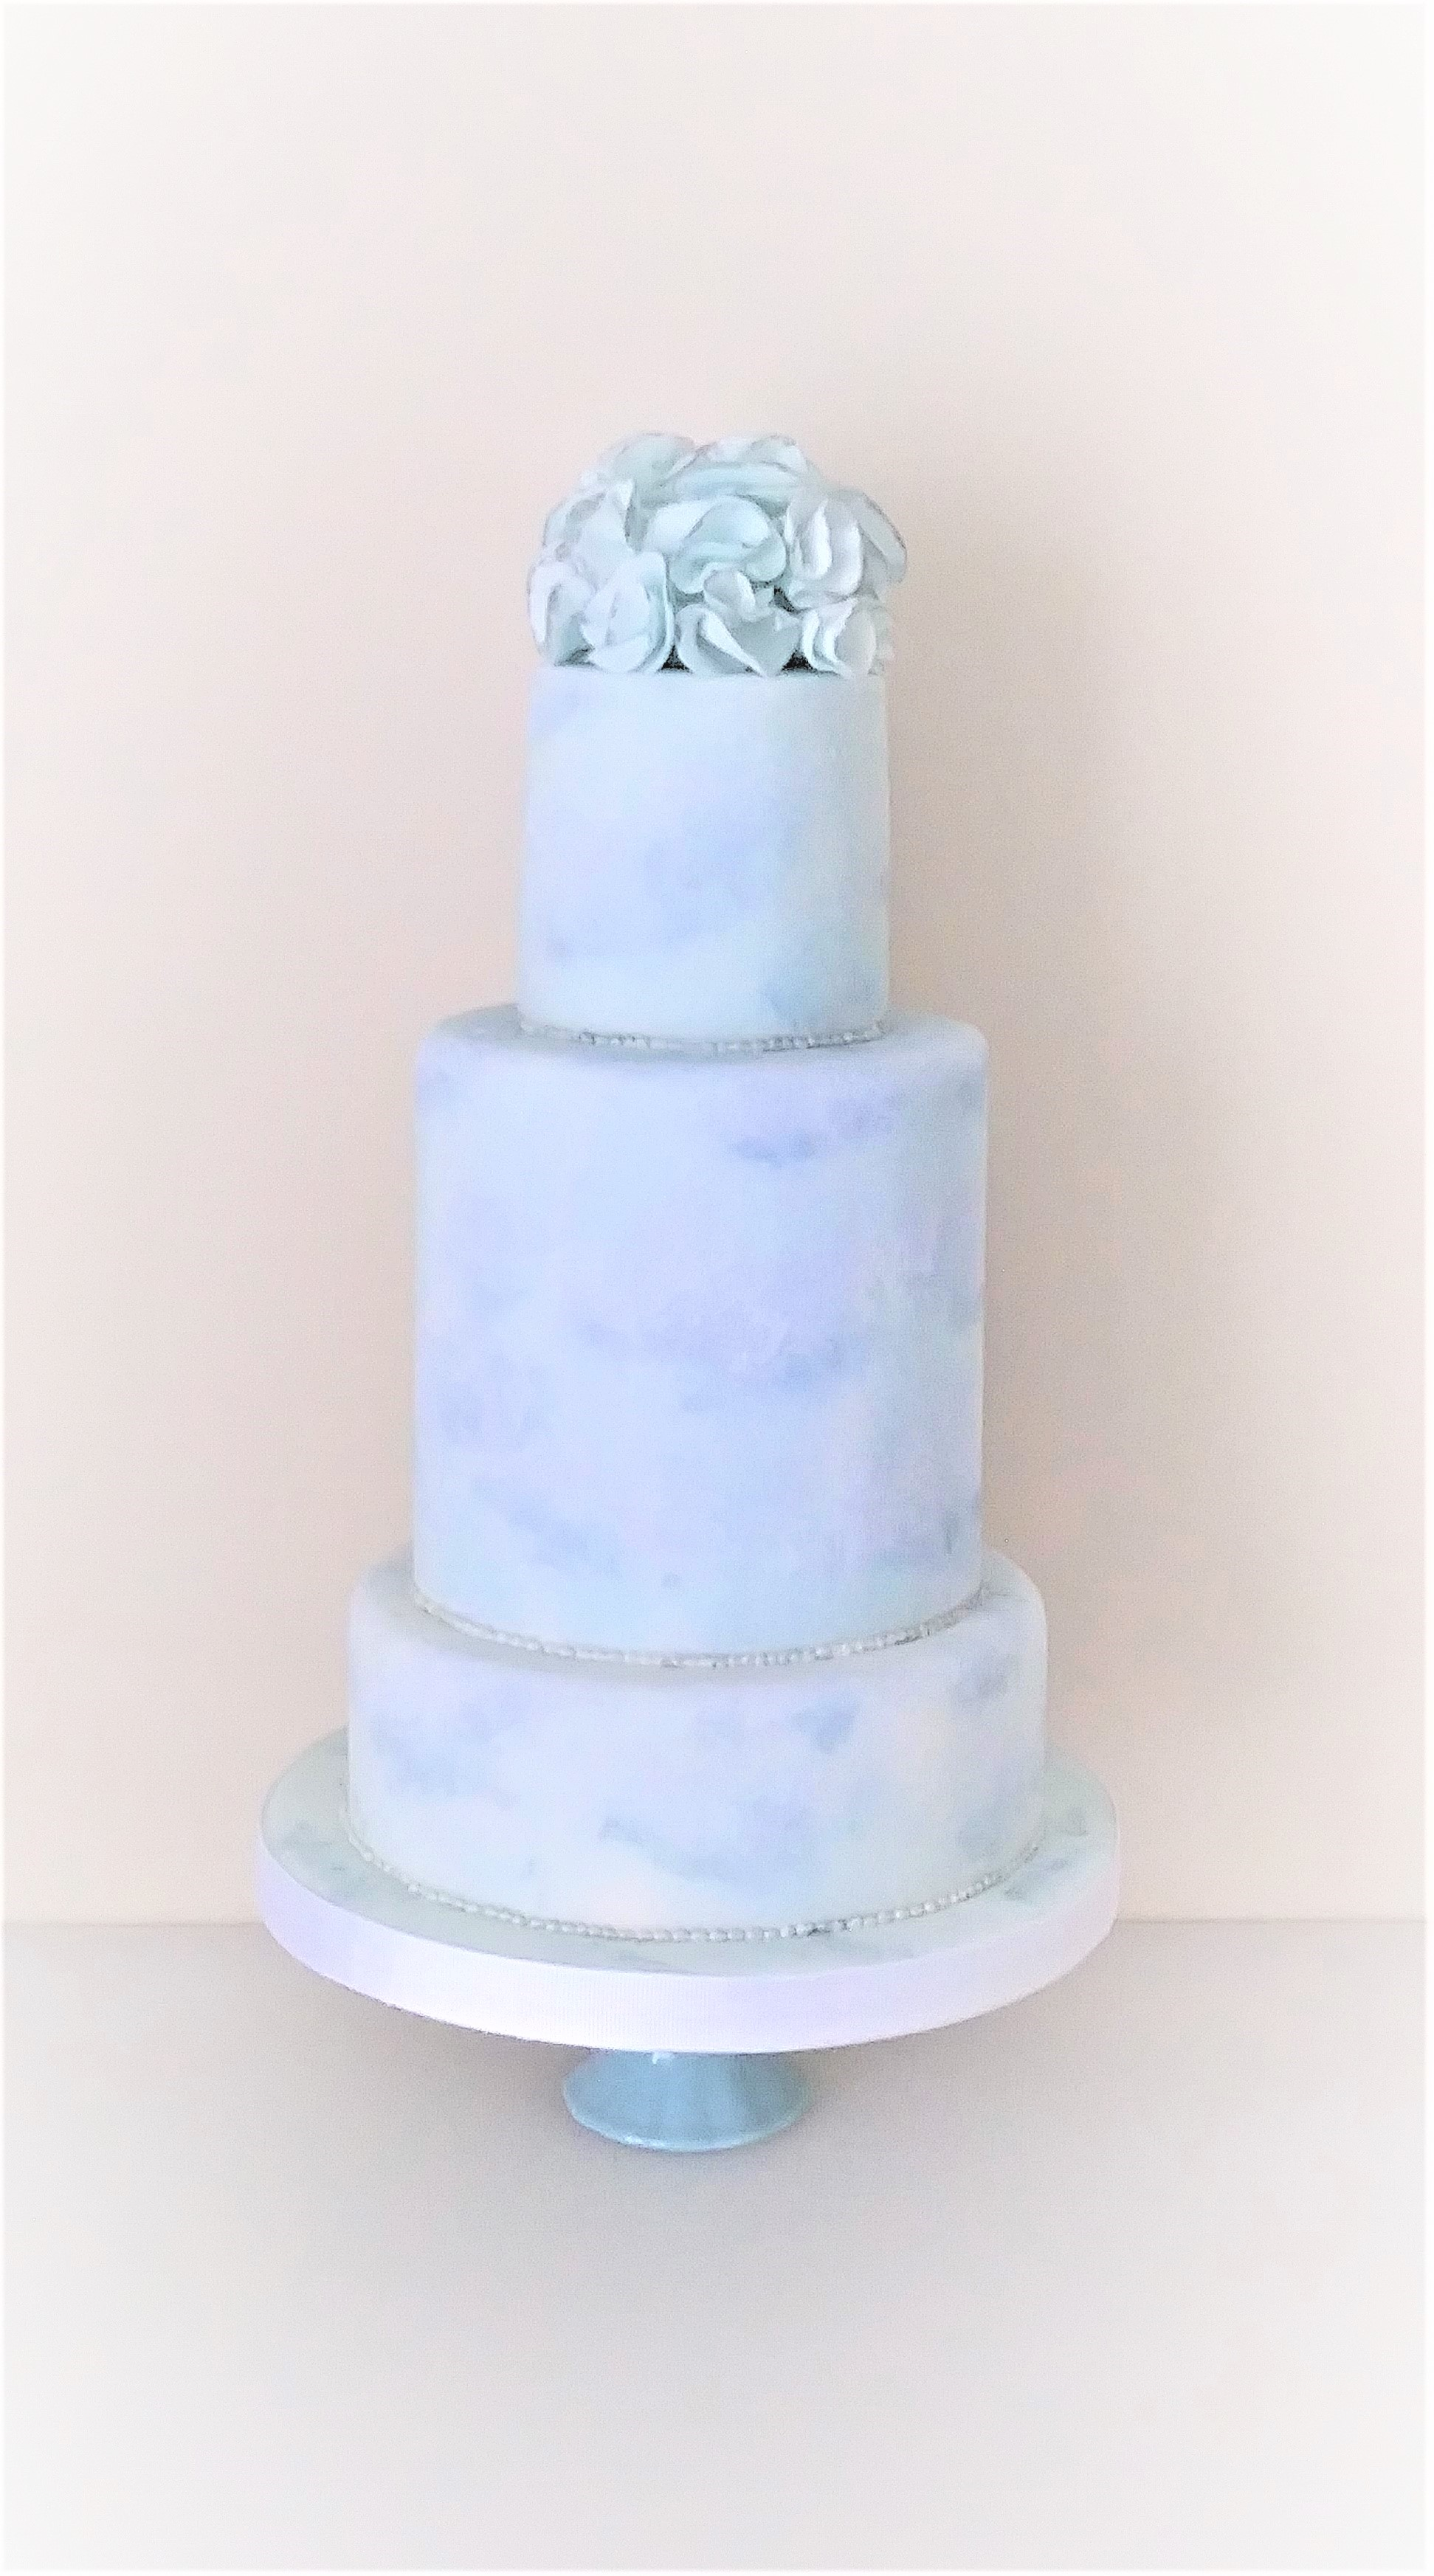 Photo of a 3 tier stacked wedding cake painted with clouds in a pale blue sky